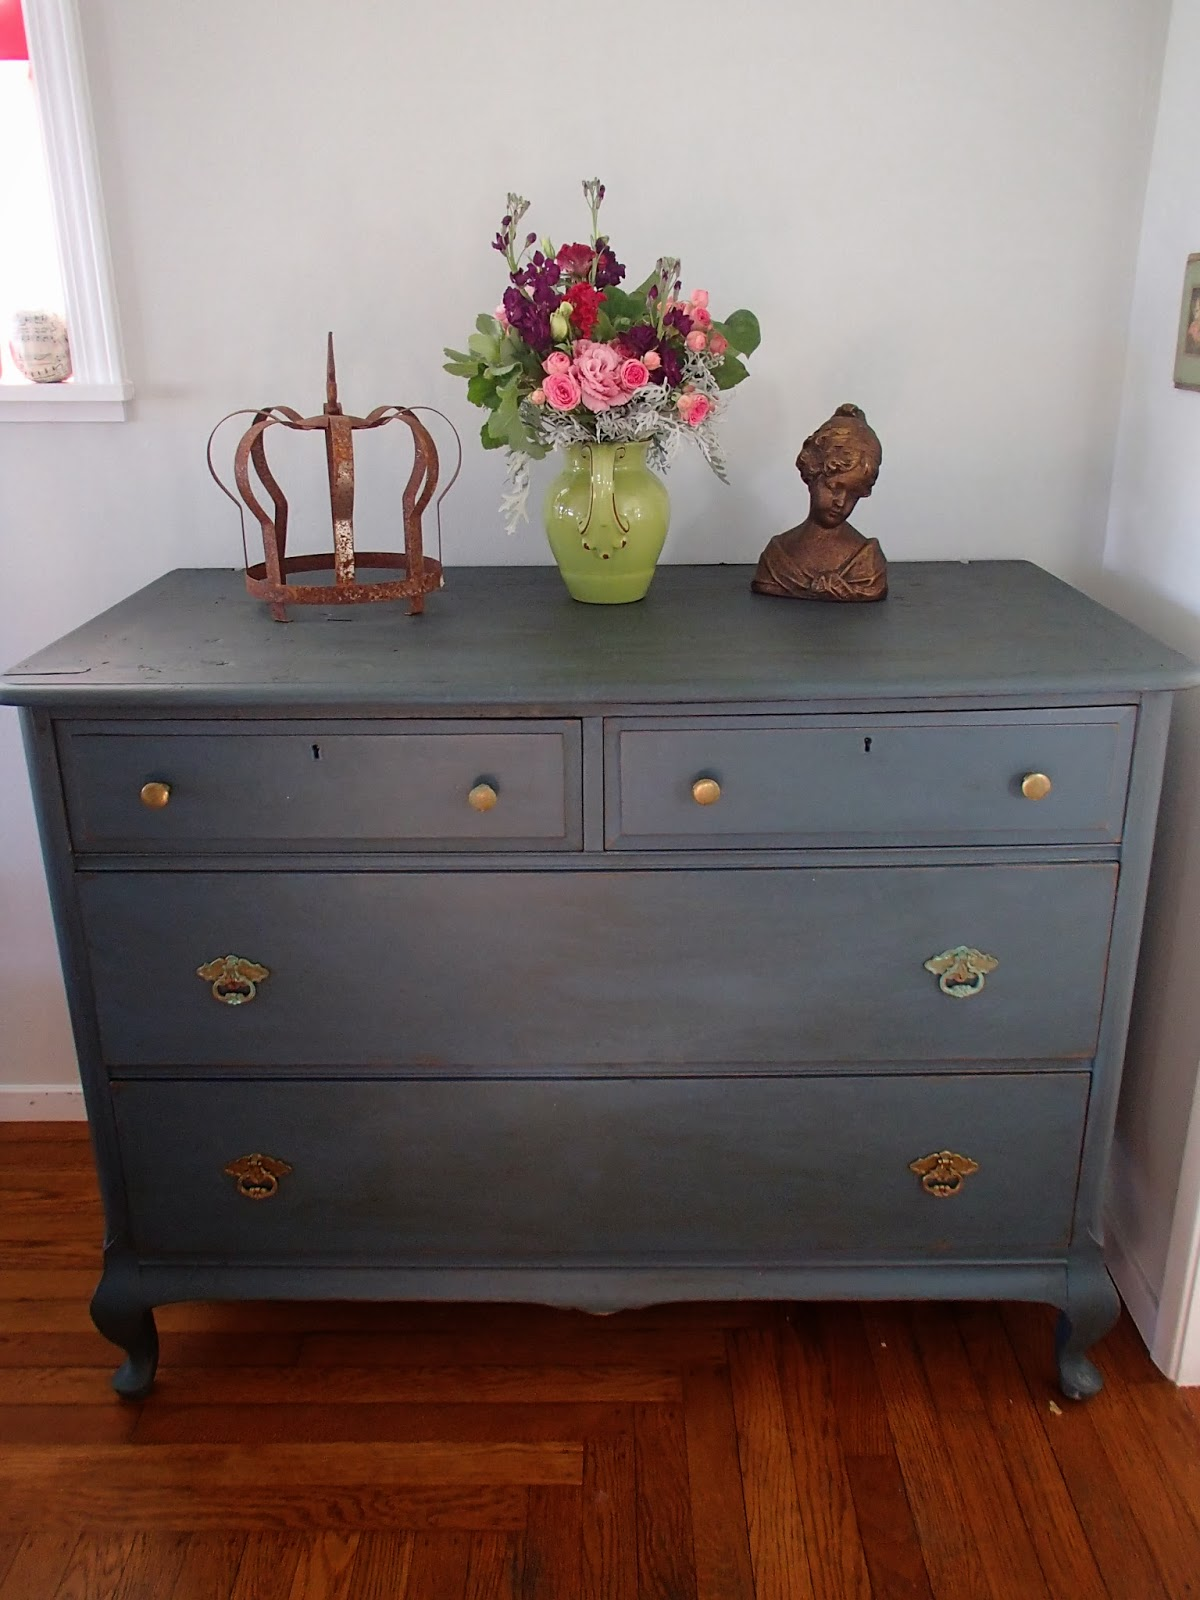 I Next Mixed Up My Home Made Chalk Paint In Carmel Blue And Painted Away The Last Step Was Distress Edges To Dark Wax Piece